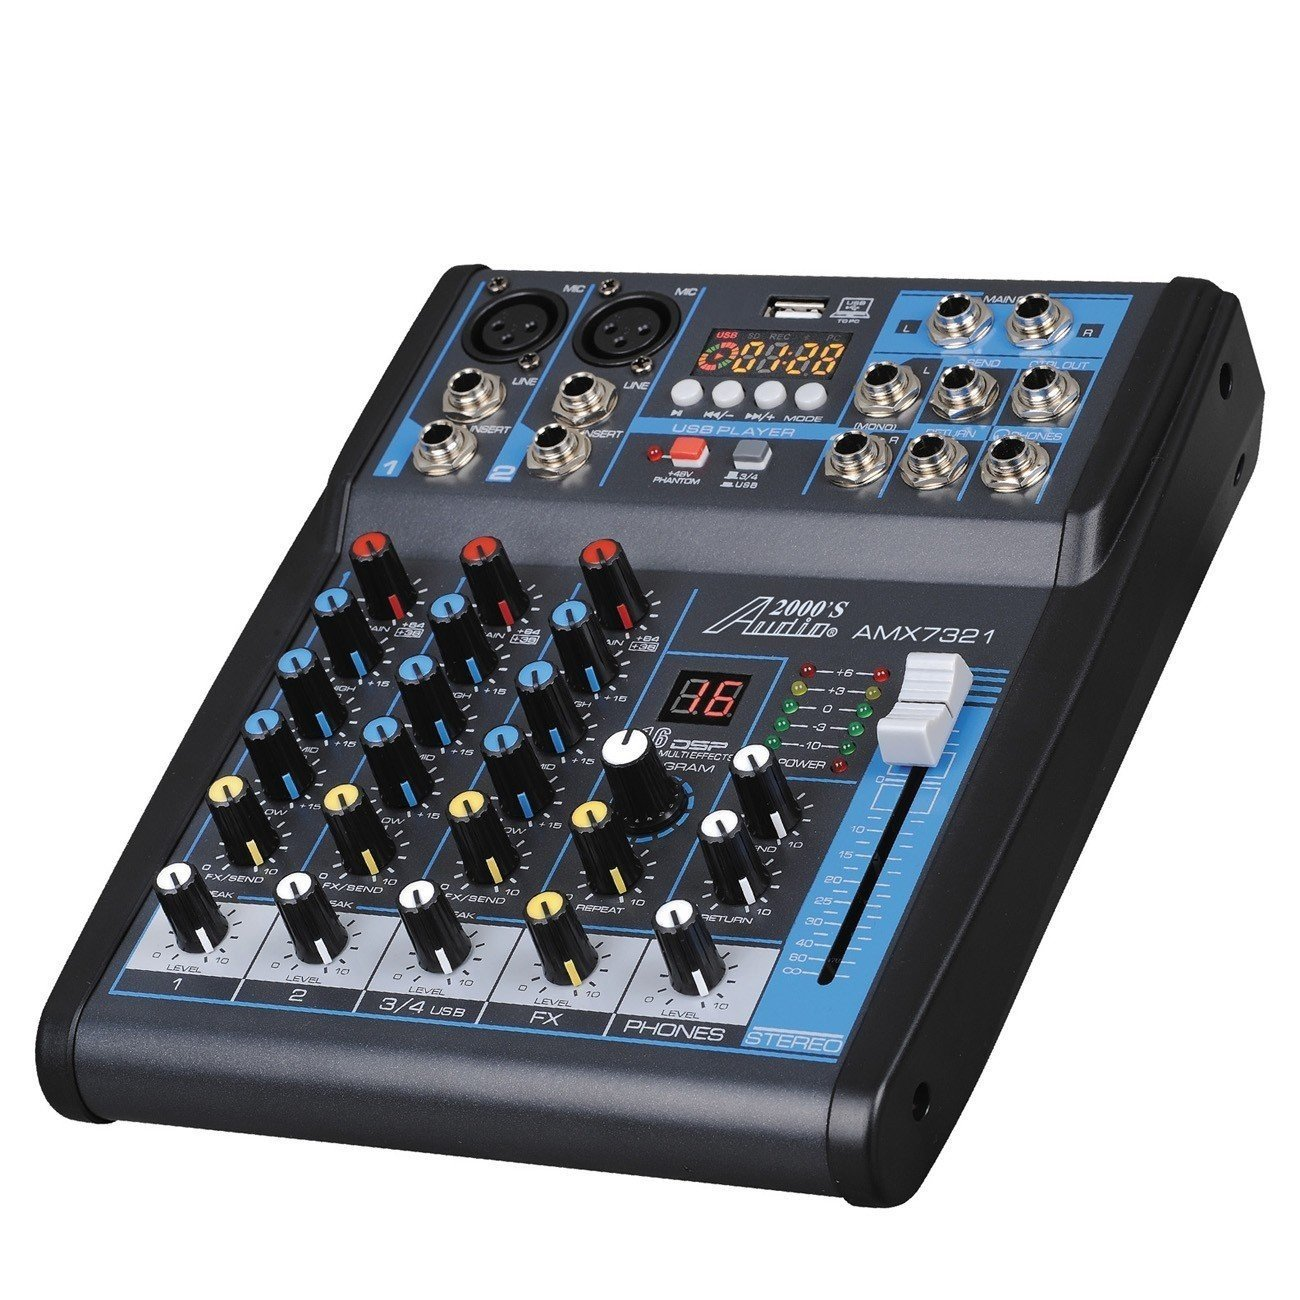 Audio 2000s AMX7321UBT 4-Channel Audio Mixer Sound Board with USB, Bluetooth and Sound Effects by Audio 2000S